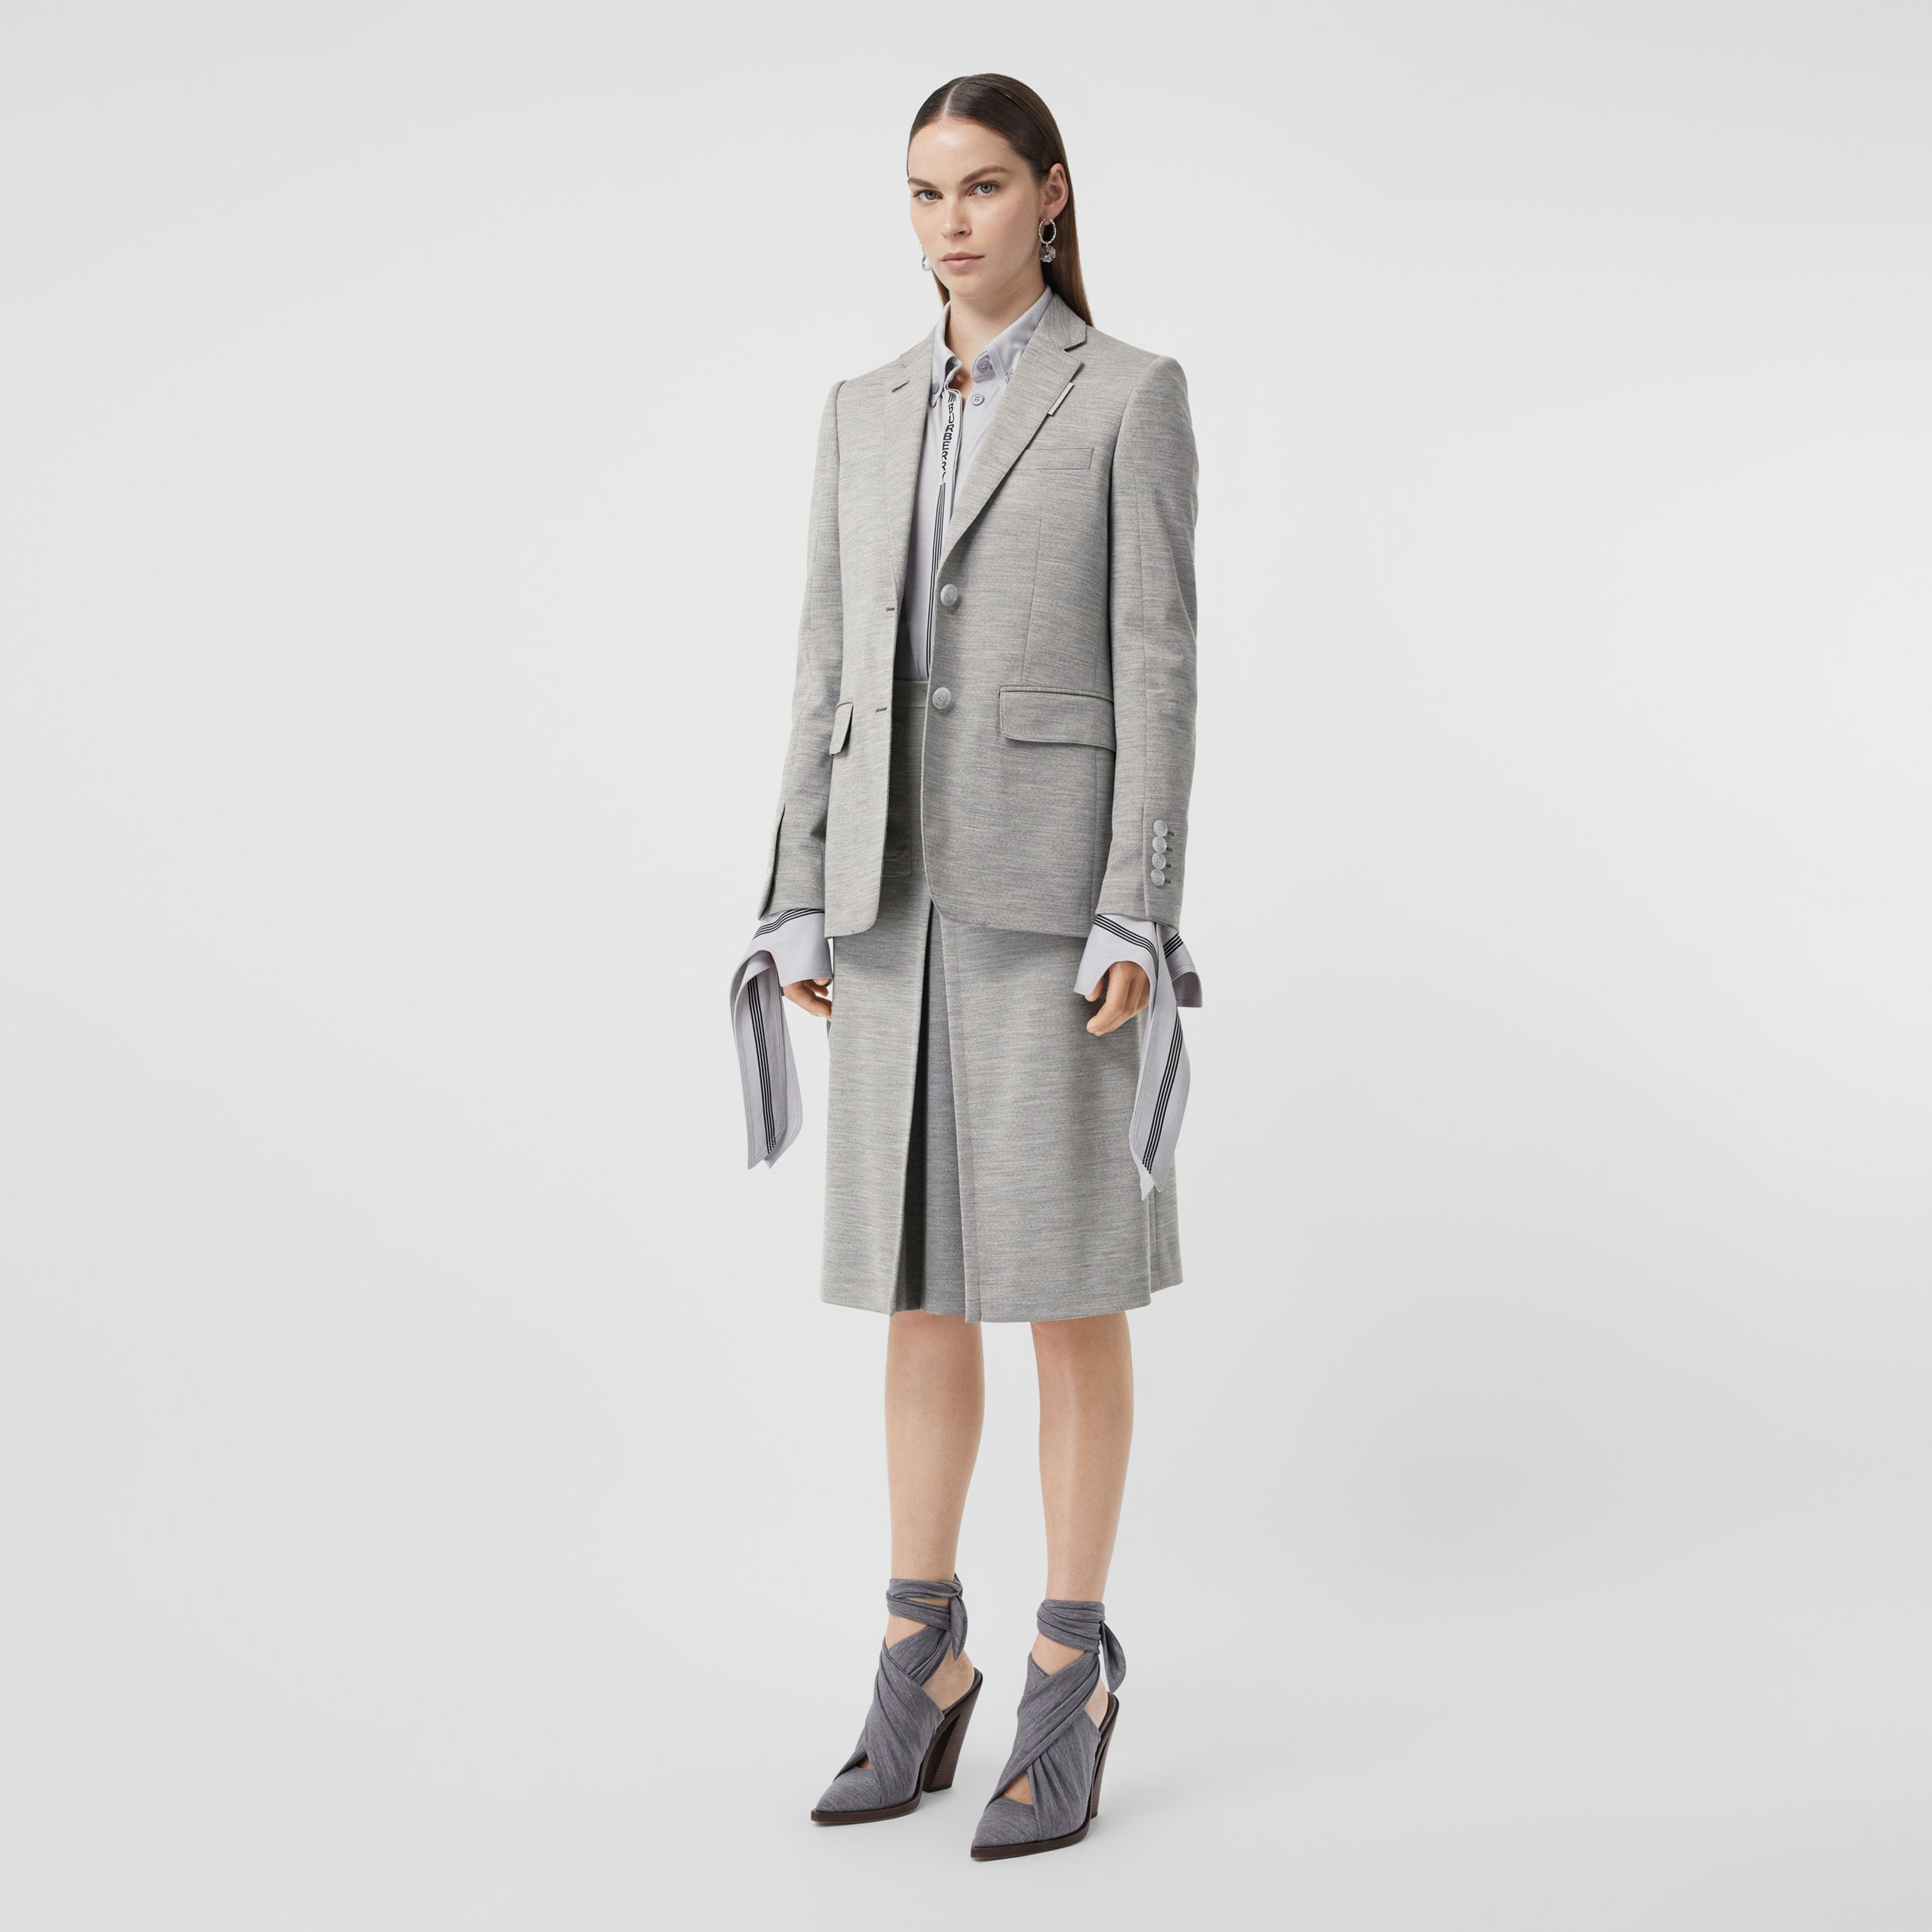 Technical Wool Jersey Blazer in Grey Taupe Melange - Women | Burberry - 1